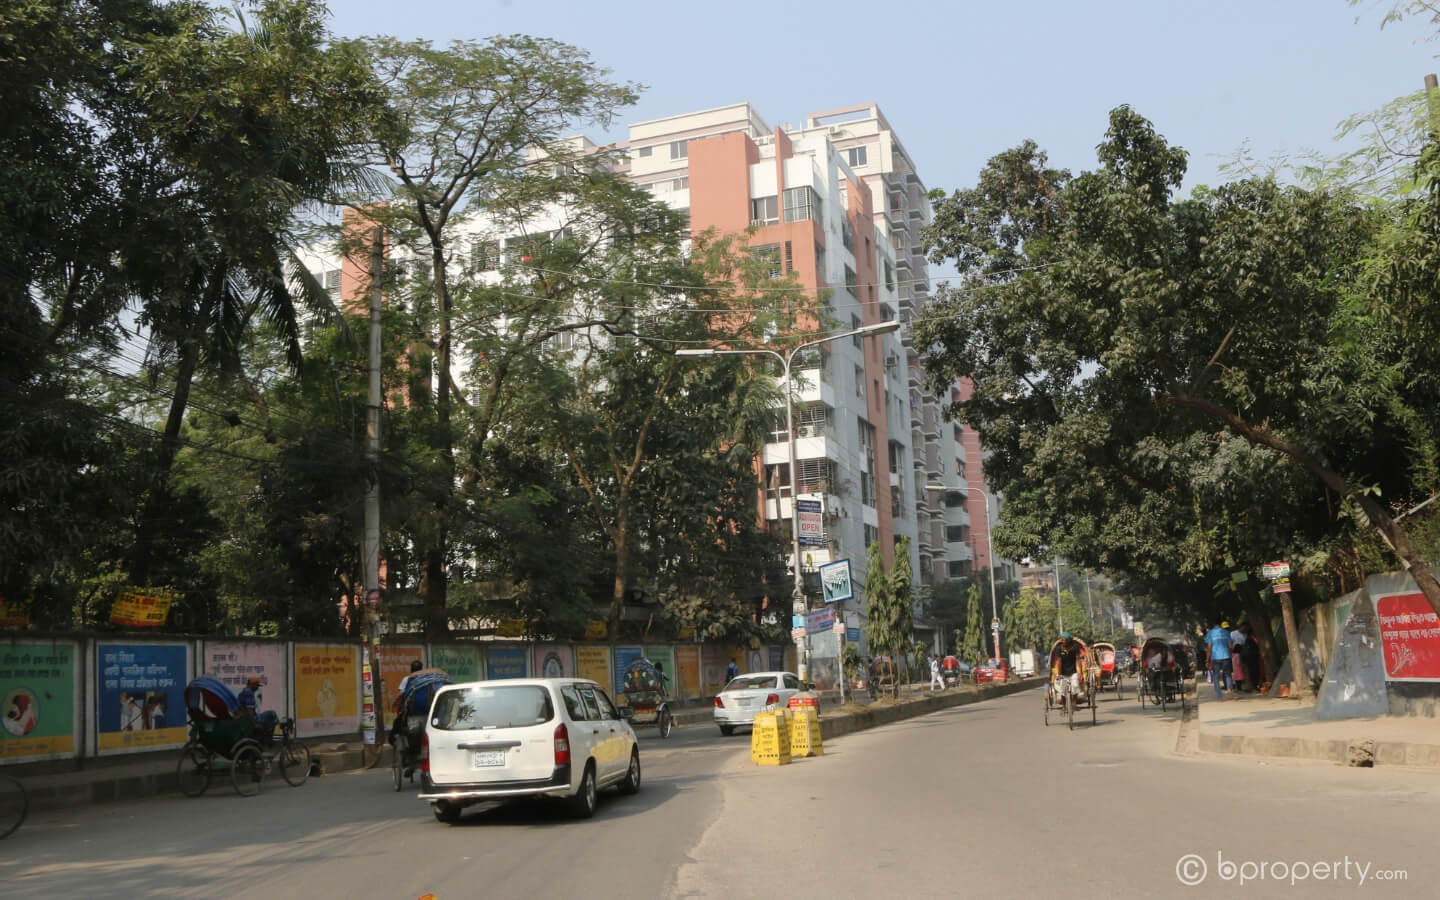 Mohammadpur is one of the emerging commercial areas for startups